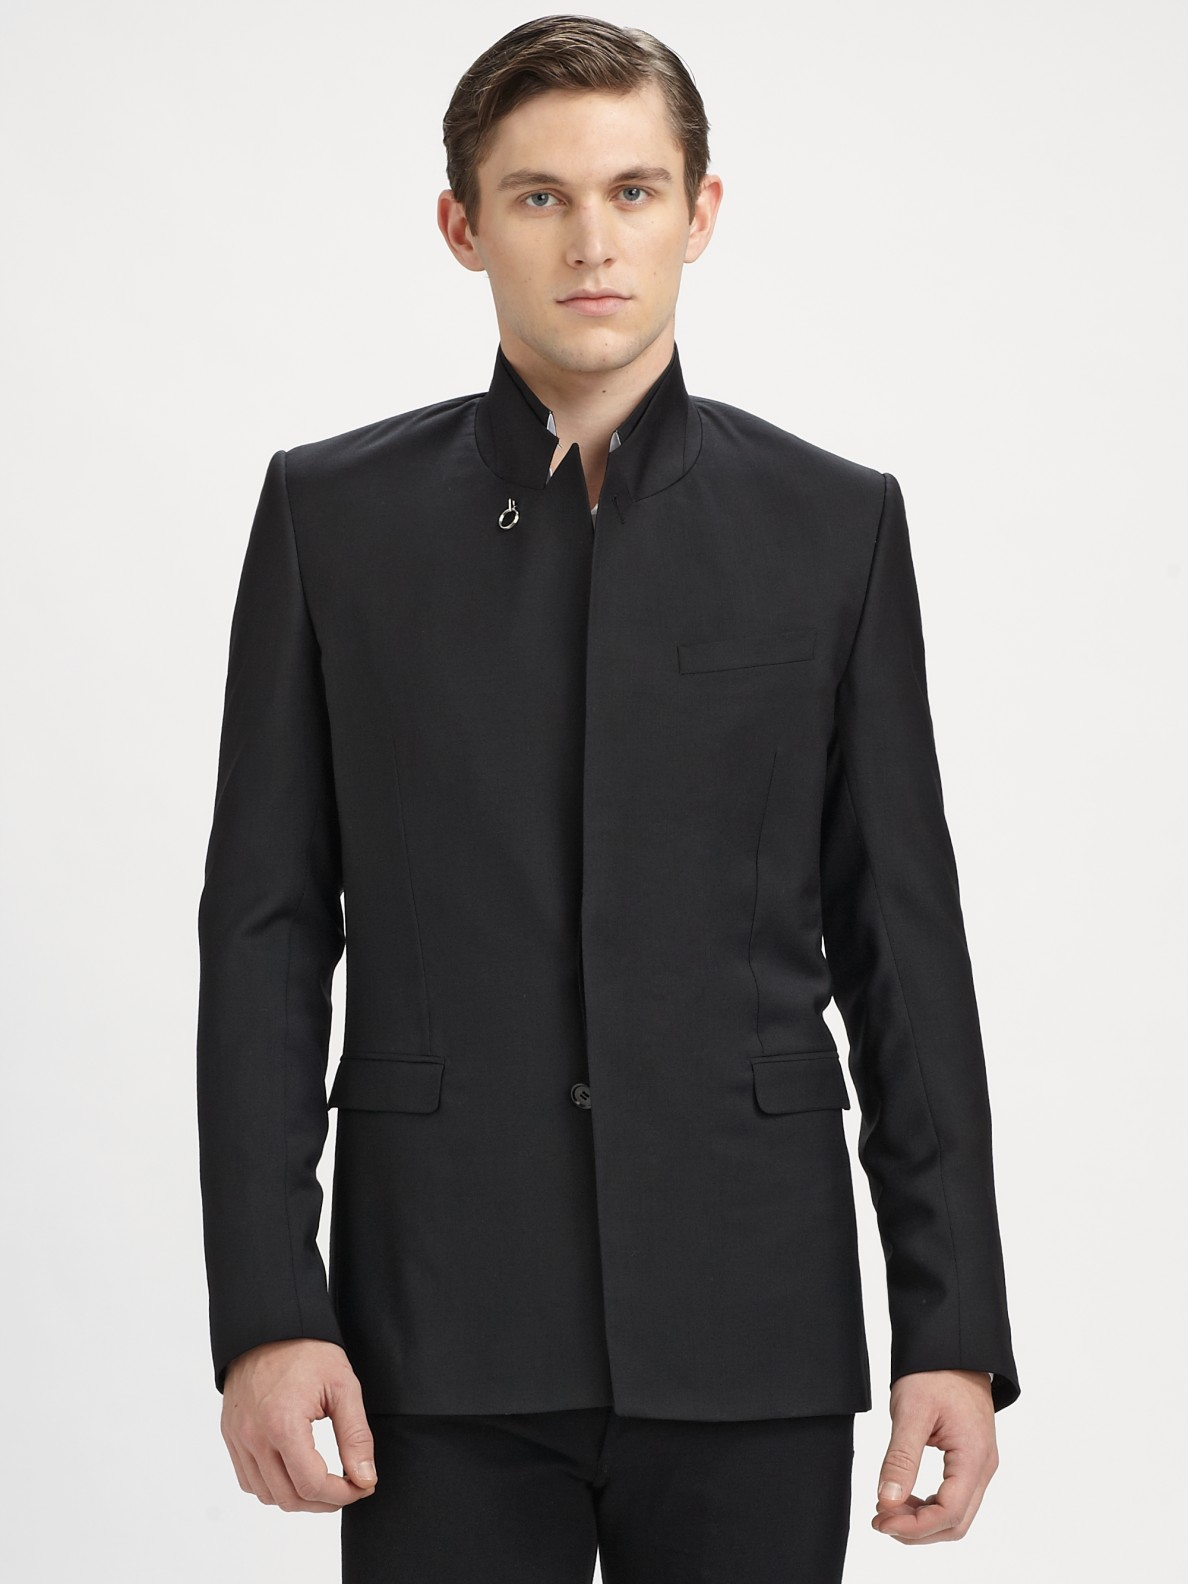 Dior homme Stand-collar Wool Coat in Black for Men | Lyst